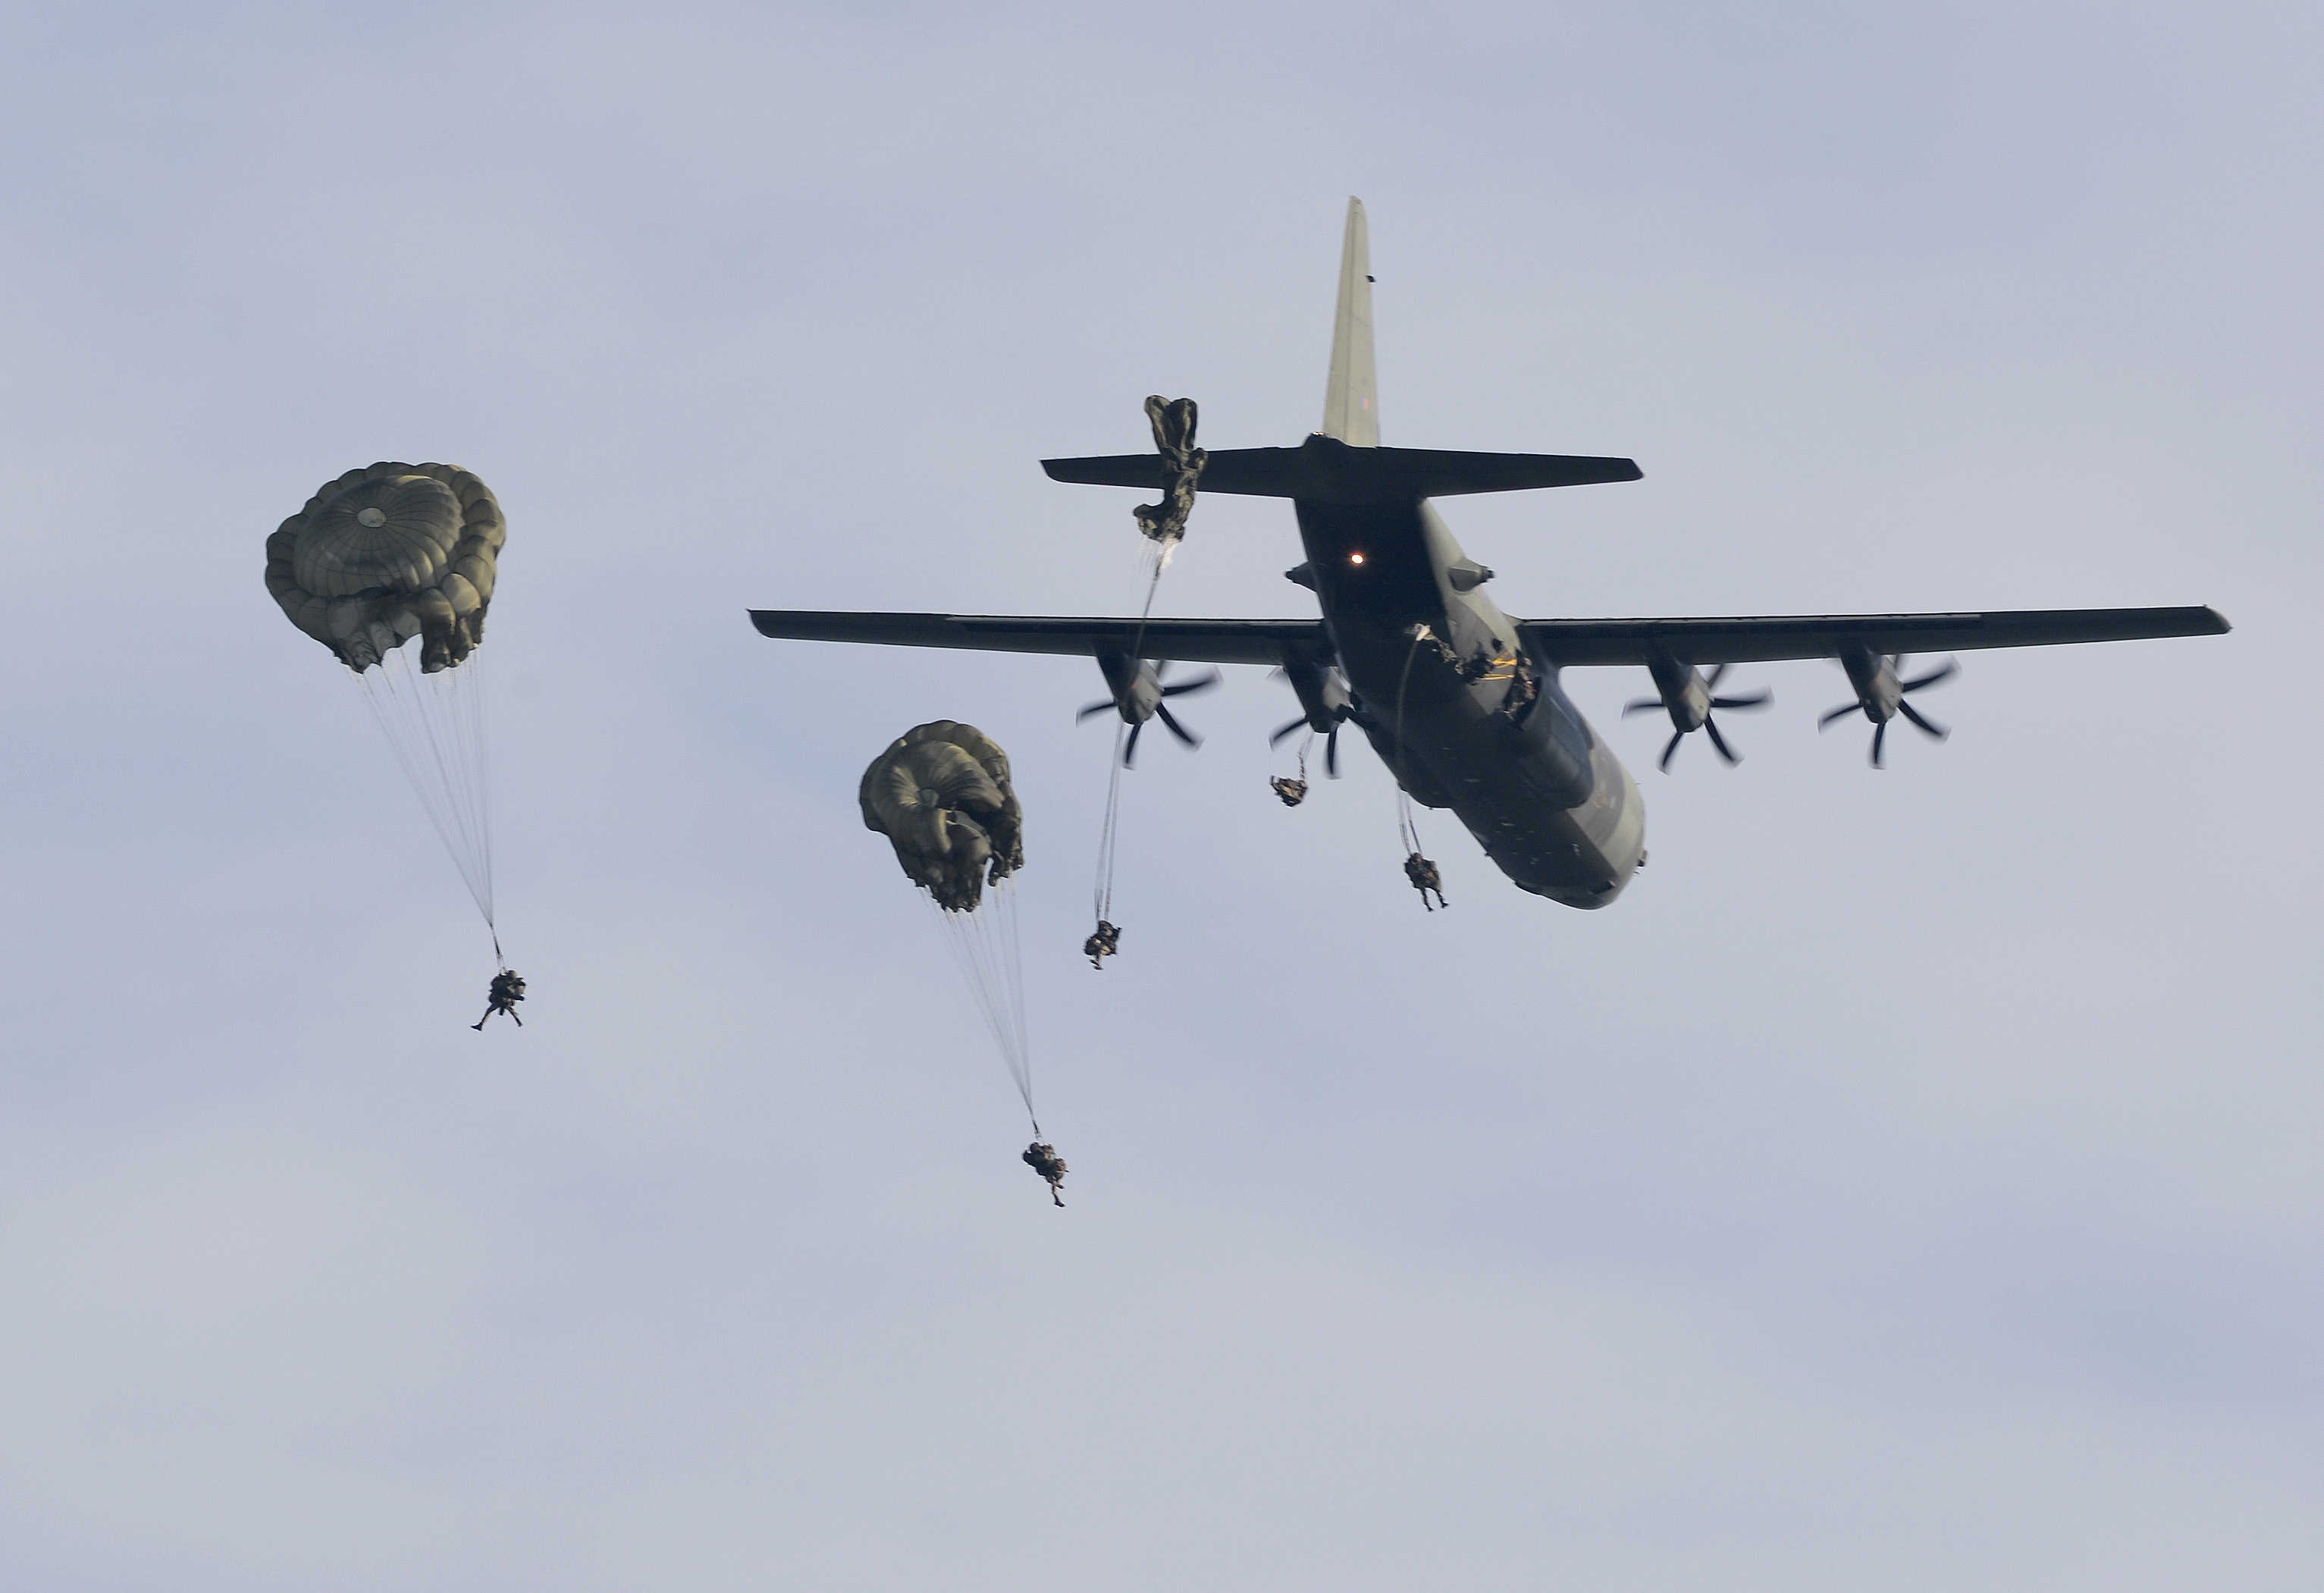 File:16 Air Assault Brigade - Exercise Wessex Storm